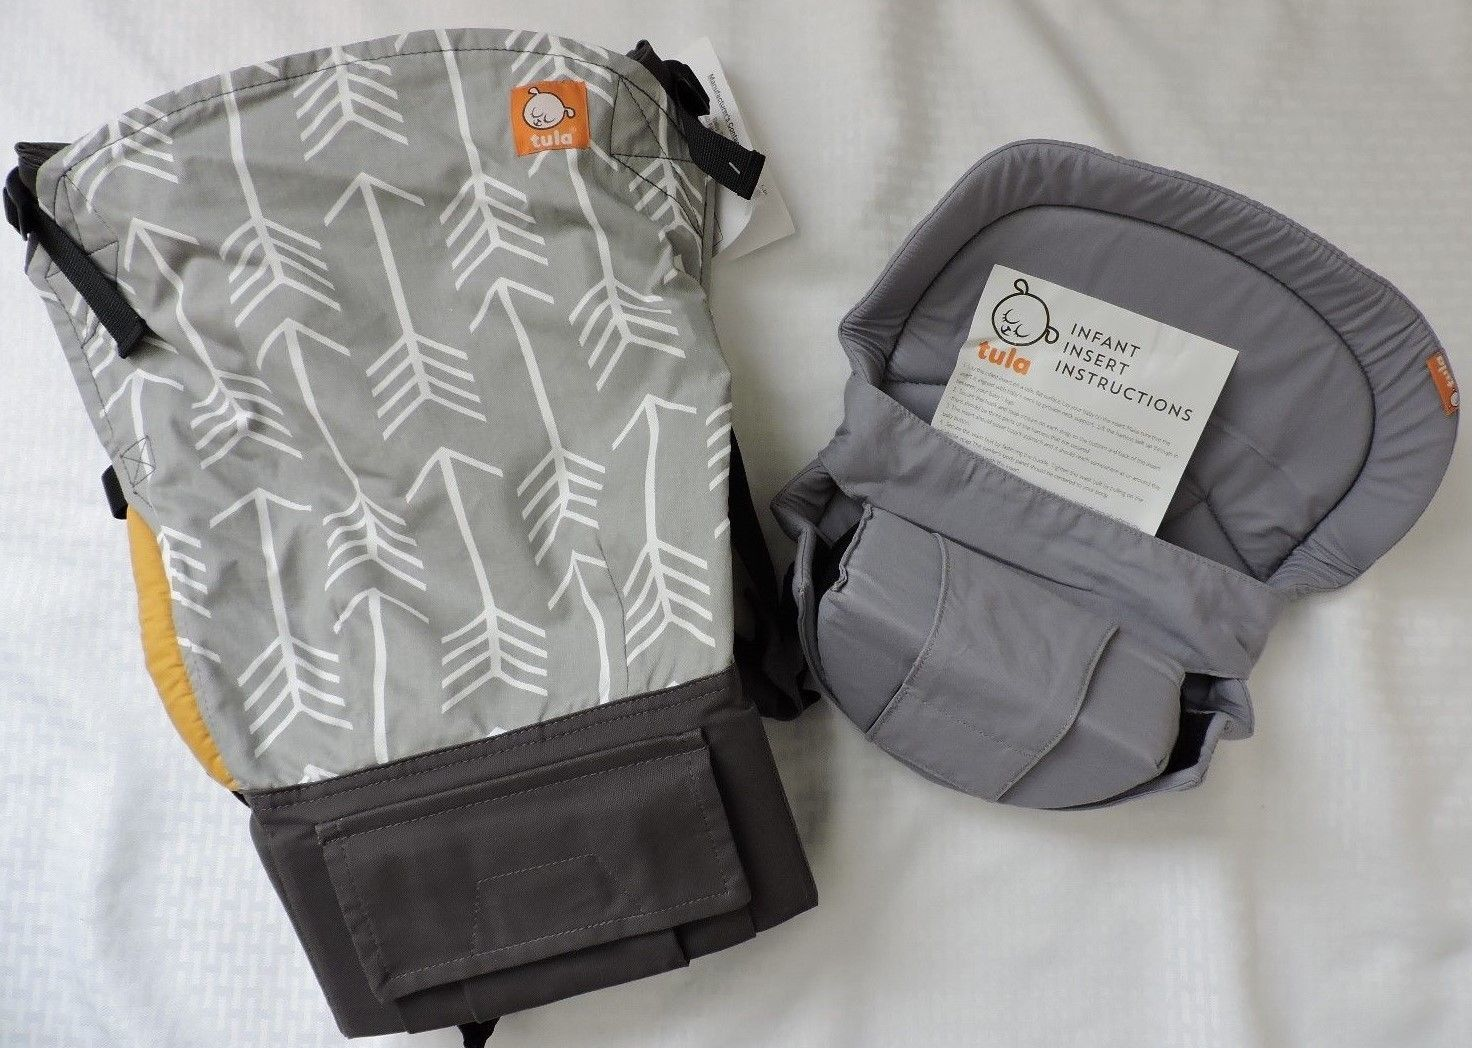 NEW Tula Standard Baby Archer Grey Yellow PLUS NEW Grey Infant Insert https://t.co/BM6PSr2D9S https://t.co/Ca0z6a823g